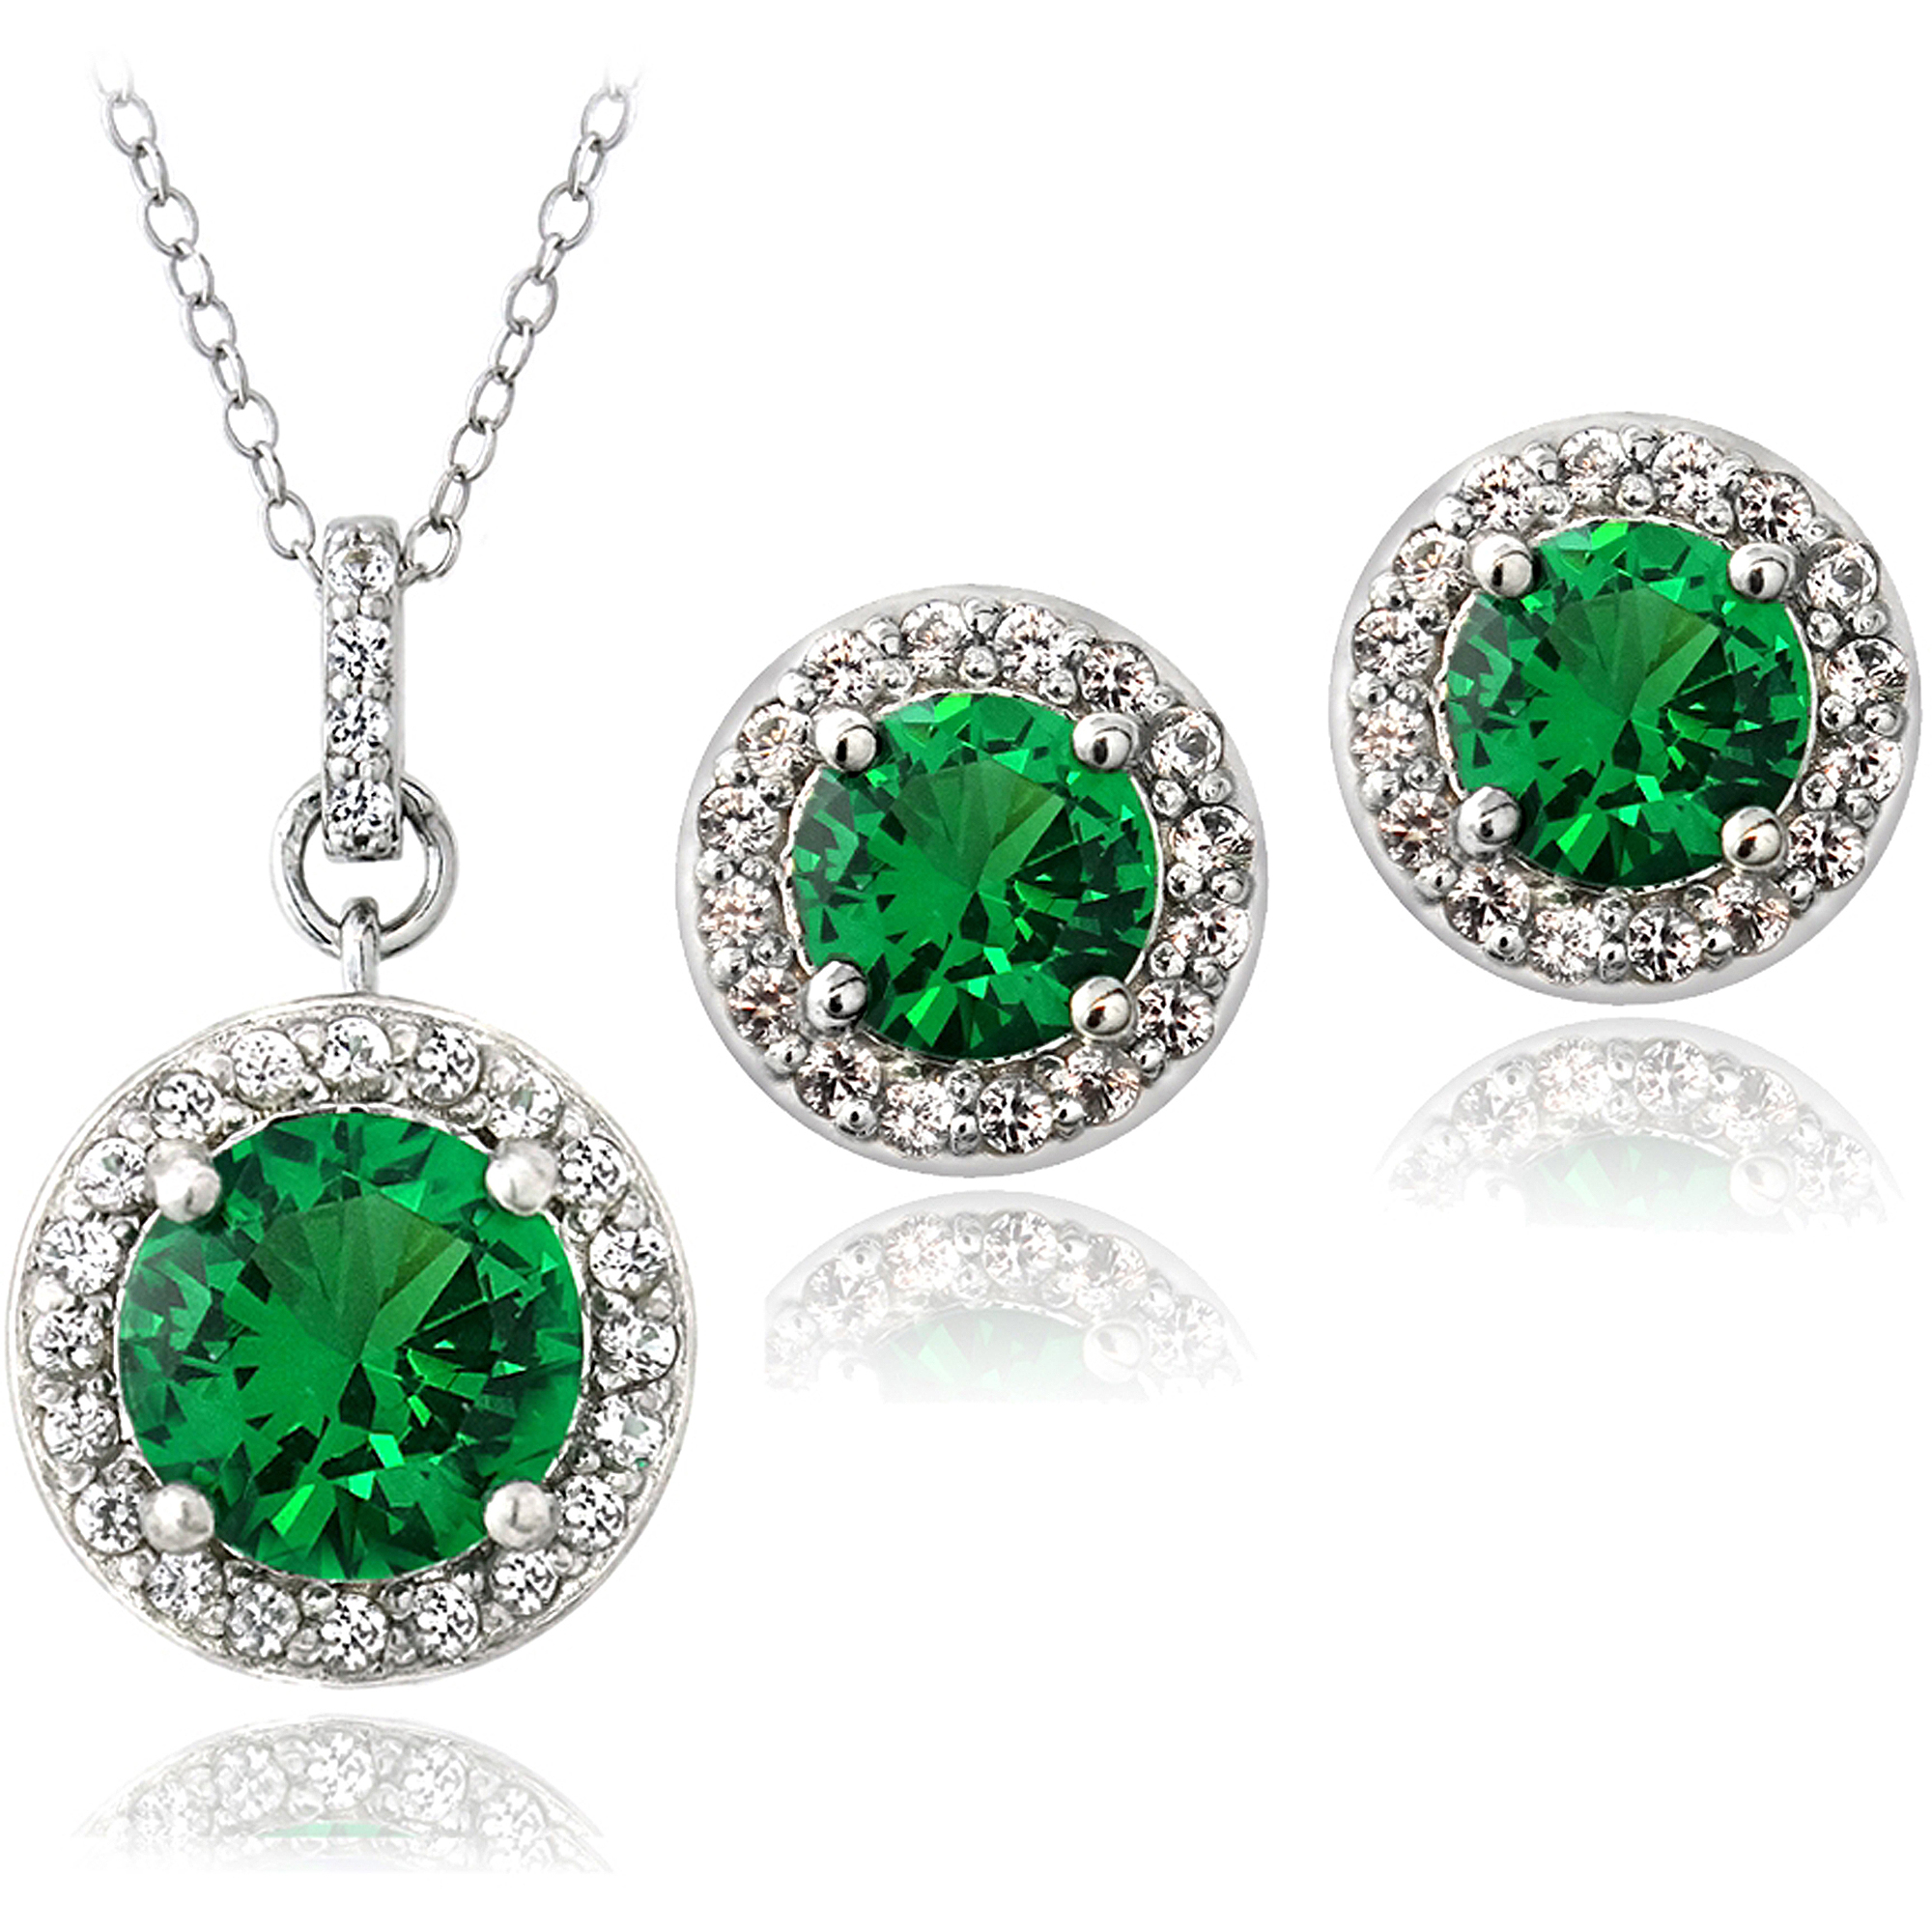 5.25 Carat T.G.W. Created Green Quartz and Created White Sapphire Sterling Silver Round Stud Earrings and Necklace Set